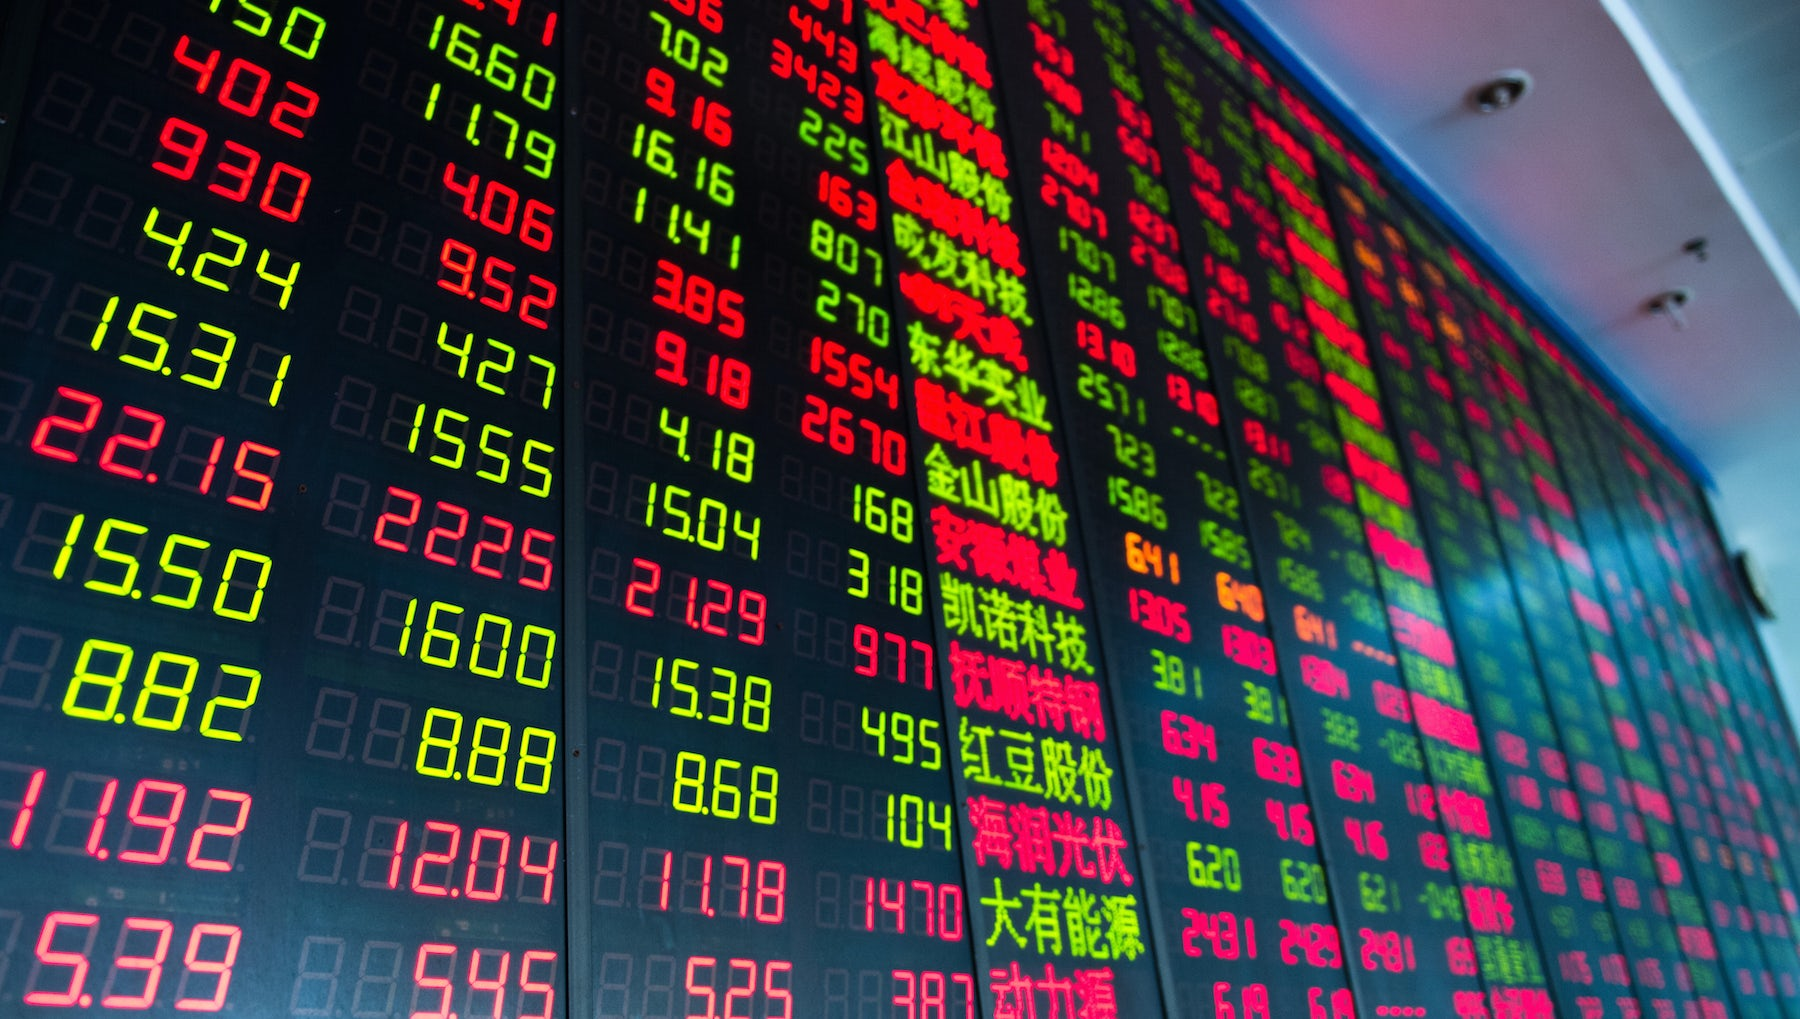 Stock market charts in China   Source: Shutterstock